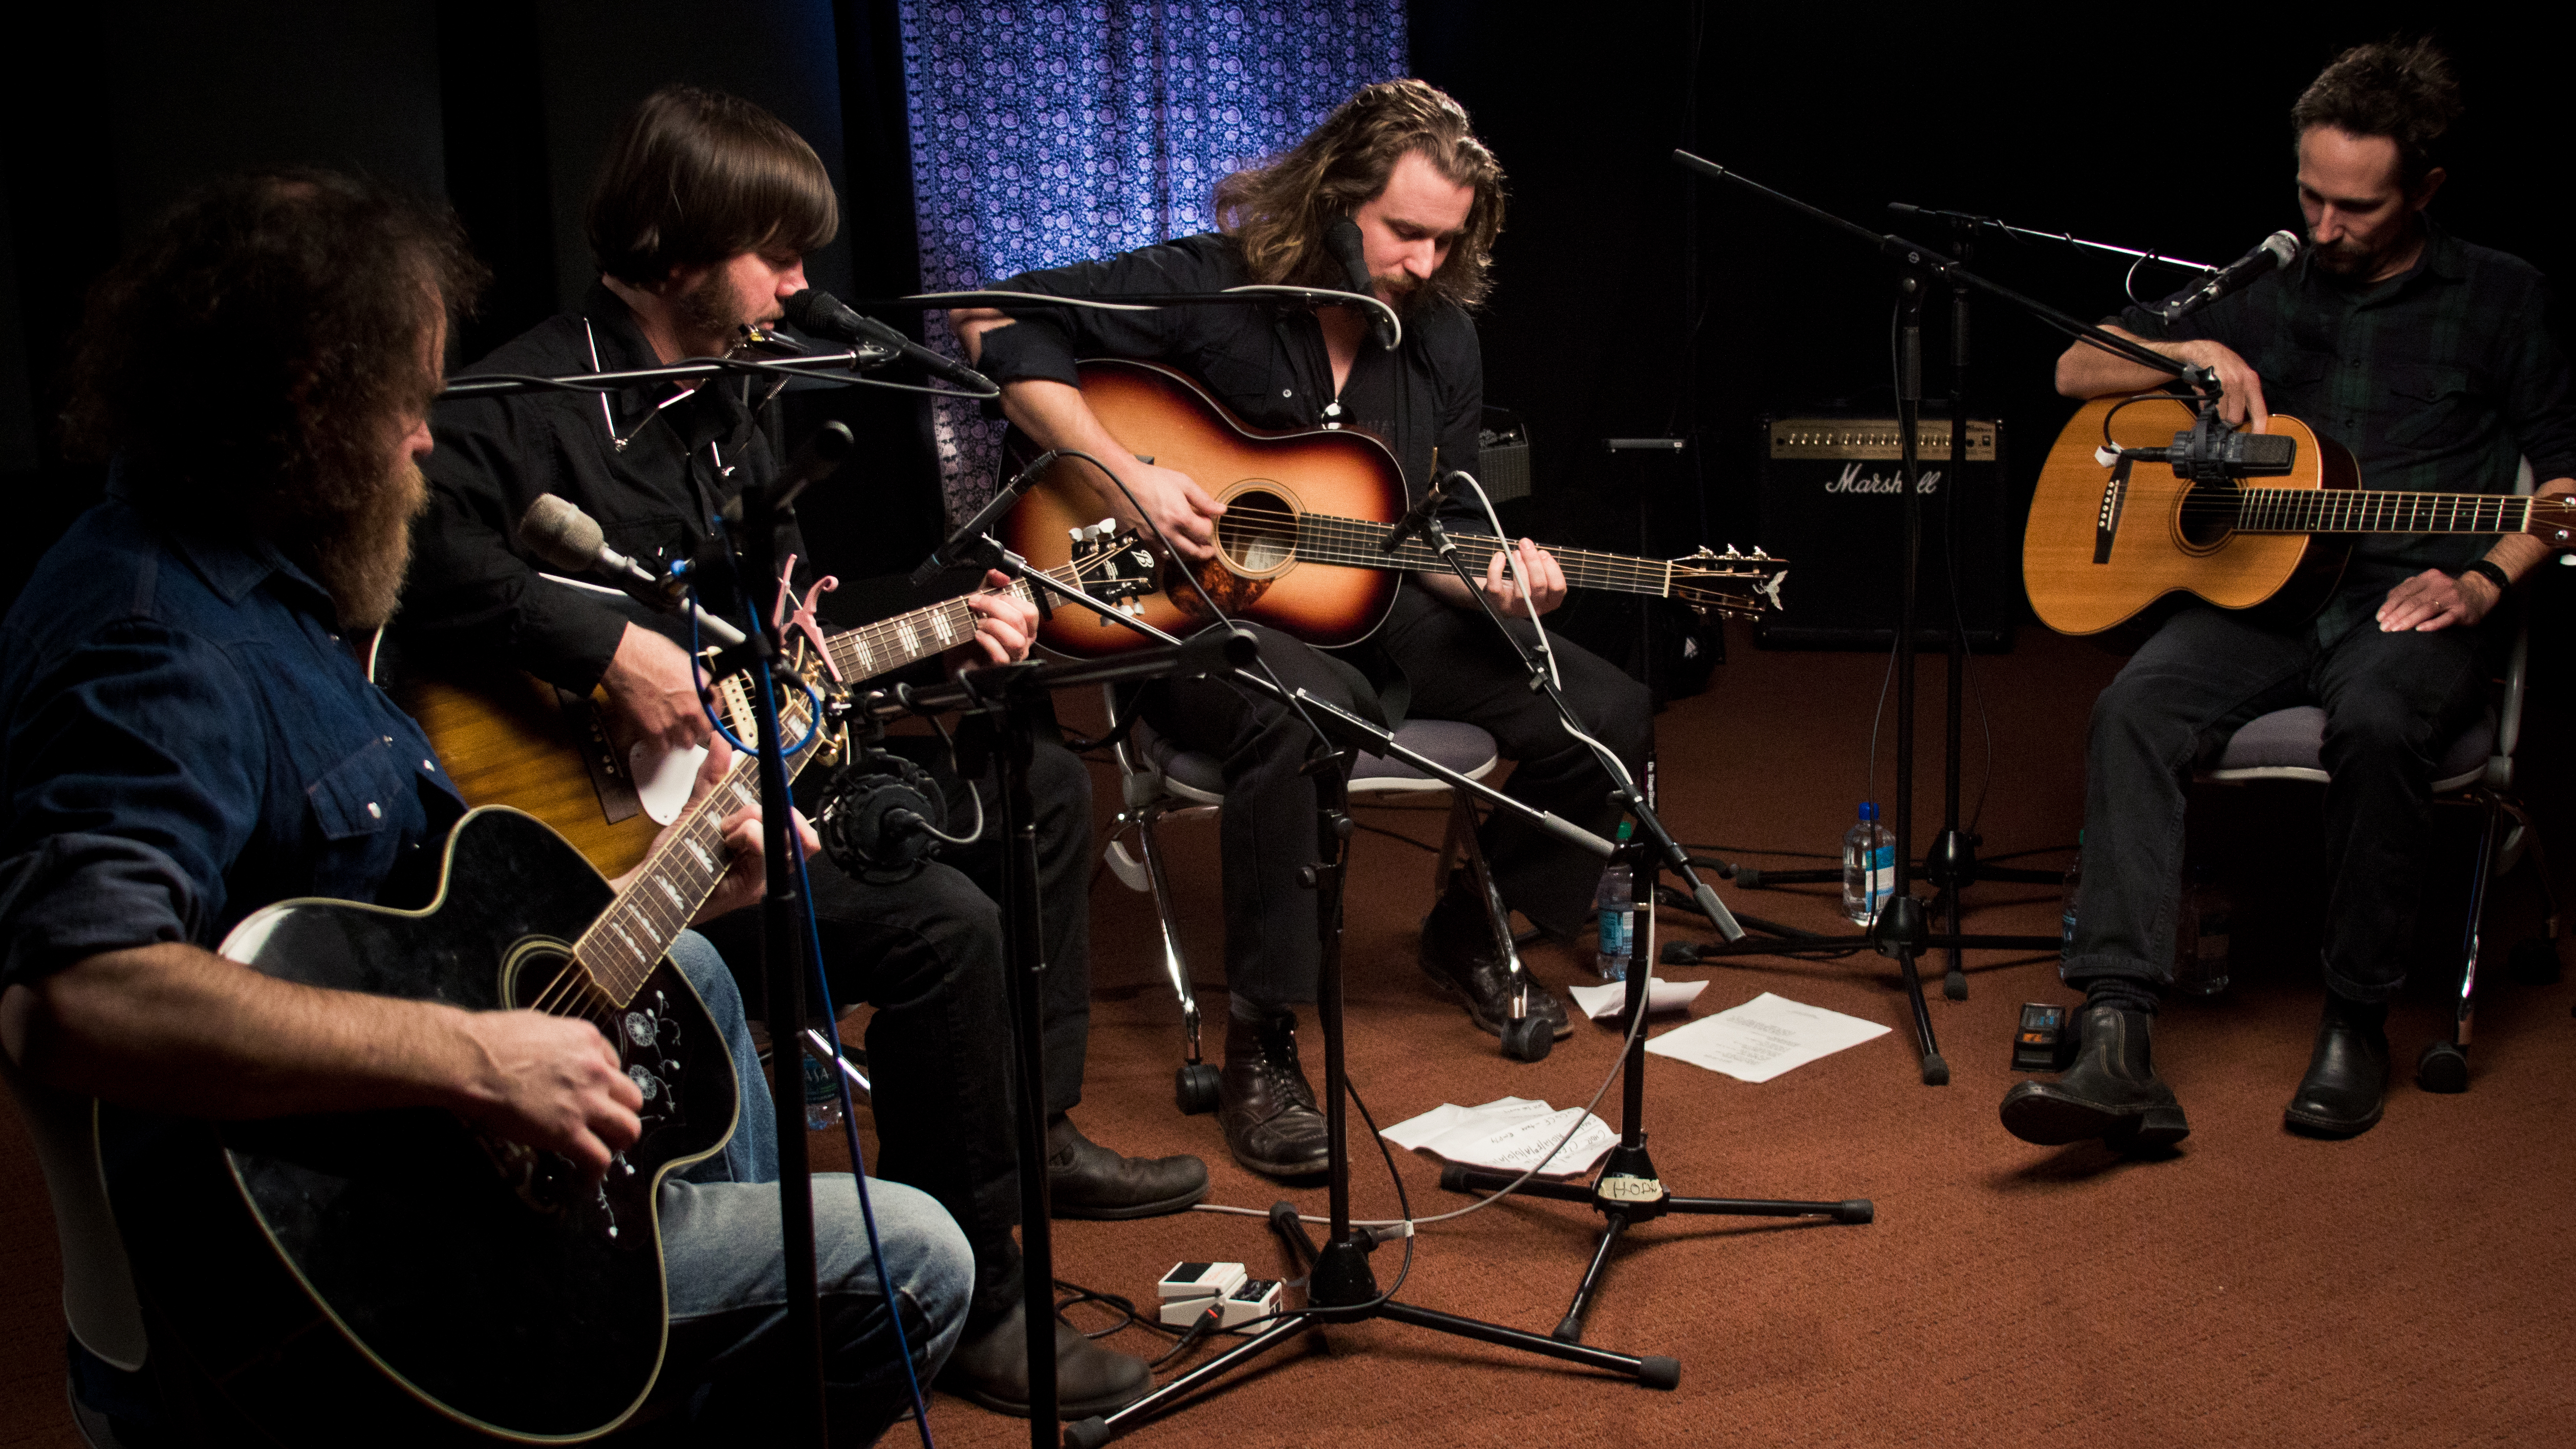 New Multitudes in Studio A (photo by Tim Teeling/WFUV)